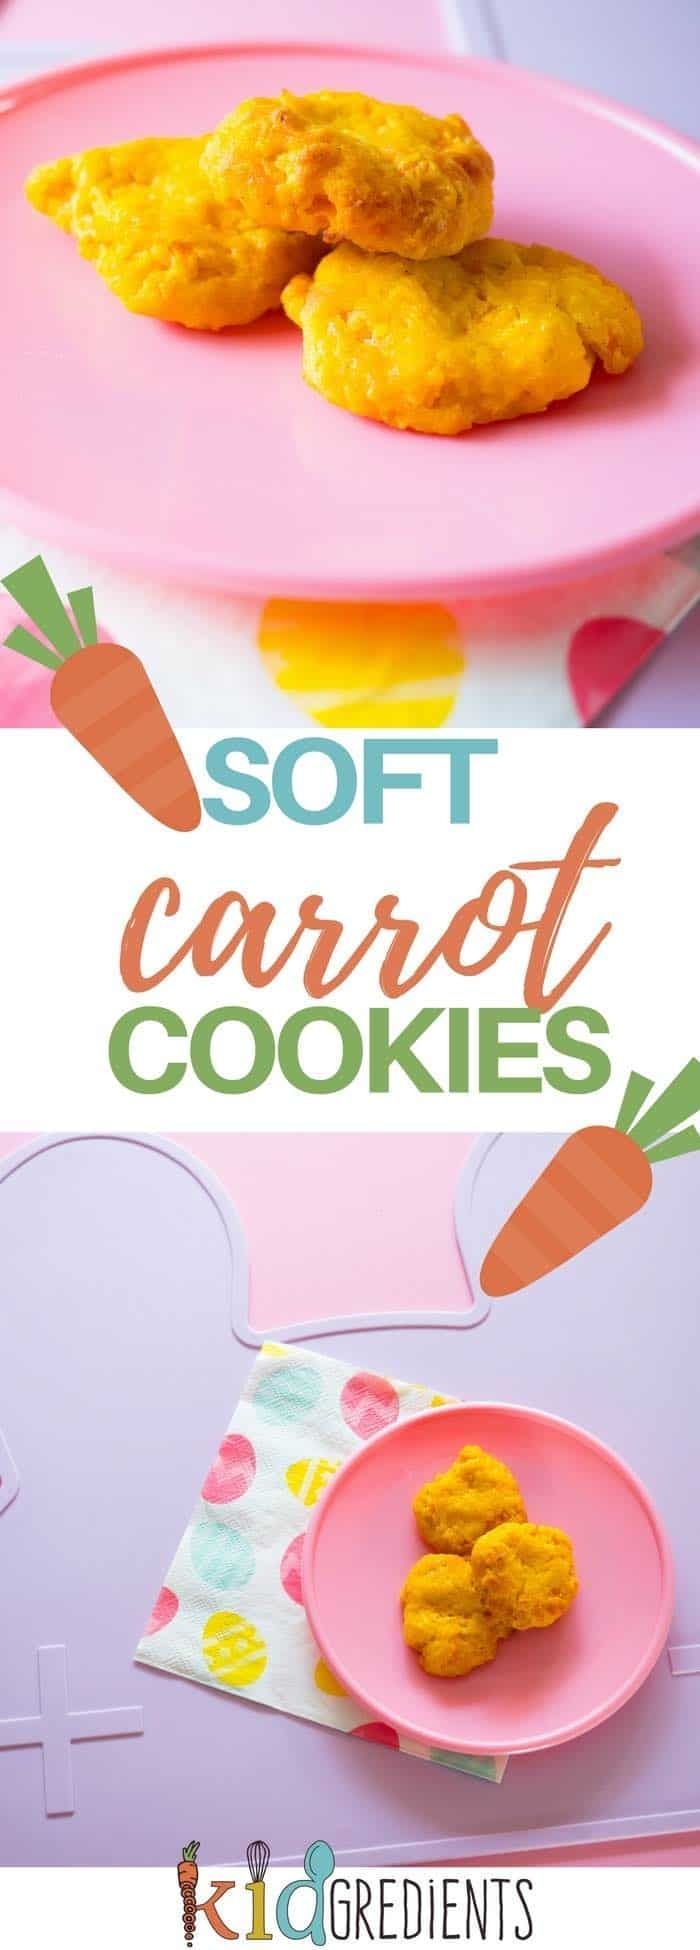 Soft carrot cookies, sweet enough with just a touch of maple syrup and dairy free! #kidsfood #babyledweaning #hiddenveggies #carrots via @kidgredients